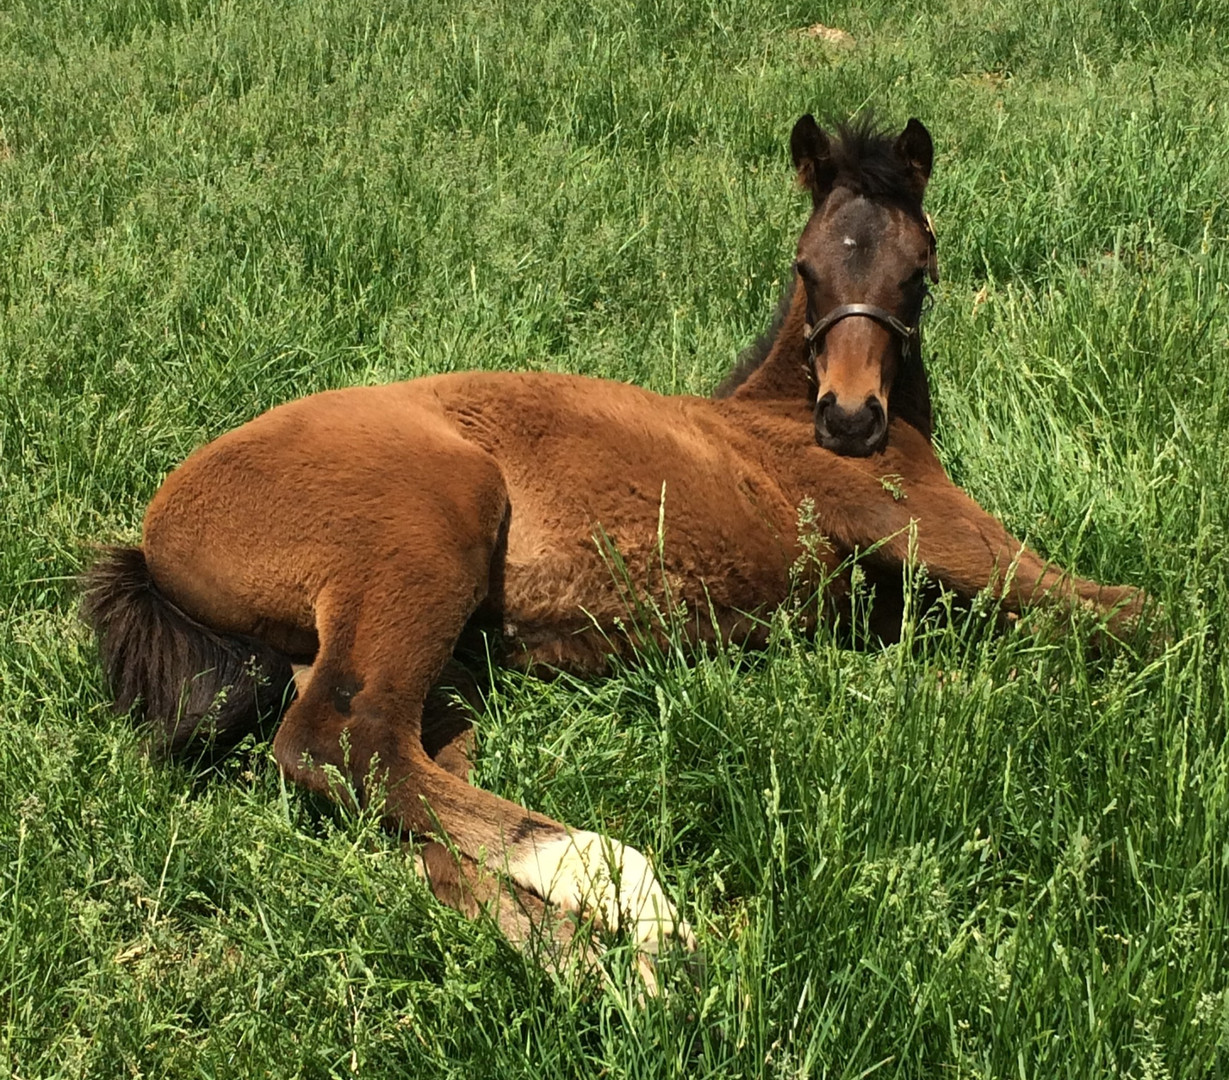 Foal in grass_edited.jpg